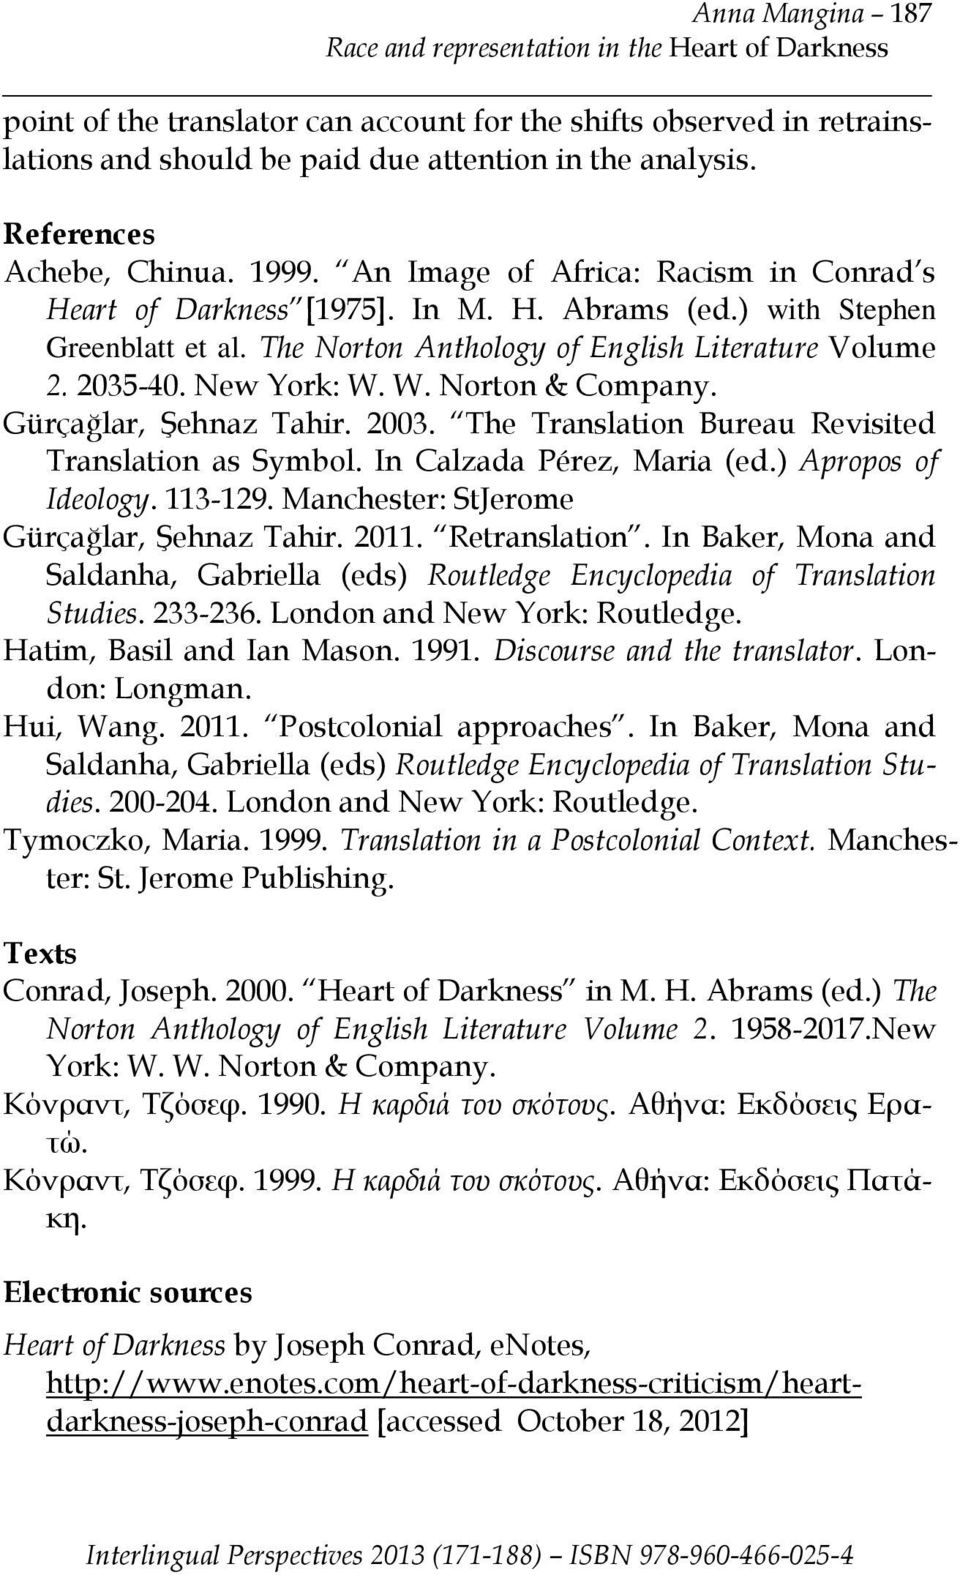 The Norton Anthology of English Literature Volume 2. 2035-40. New York: W. W. Norton & Company. Gürçağlar, Şehnaz Tahir. 2003. The Translation Bureau Revisited Translation as Symbol.